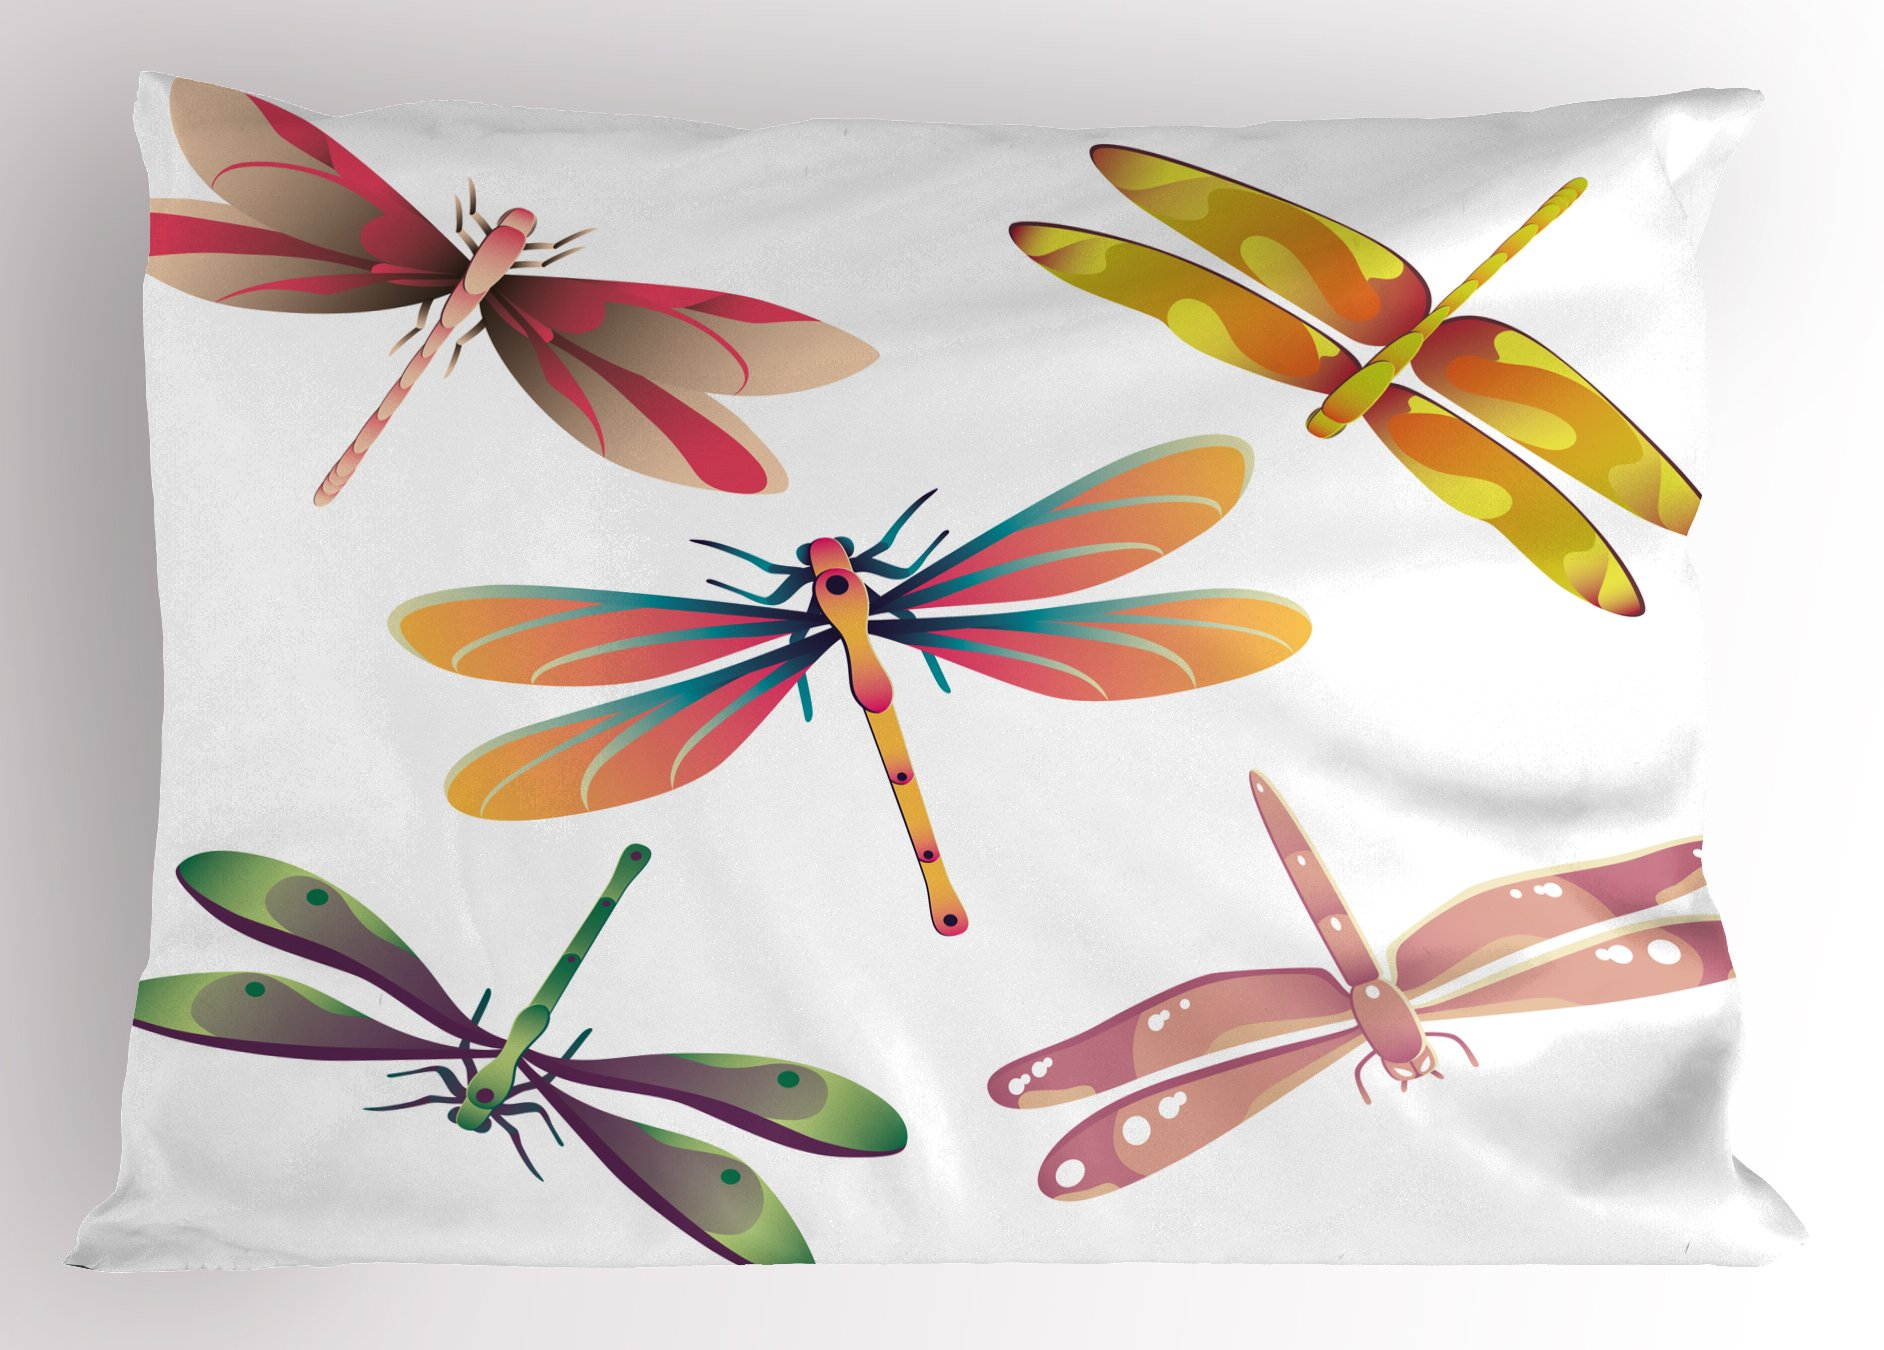 Ambesonne Dragonfly Pillow Sham, Five Spiritual Bugs in Modern Abstract Patterned Beauty Elegance Artsy Motif, Decorative Standard Queen Size Printed Pillowcase, 30 X 20 inches, Multicolor